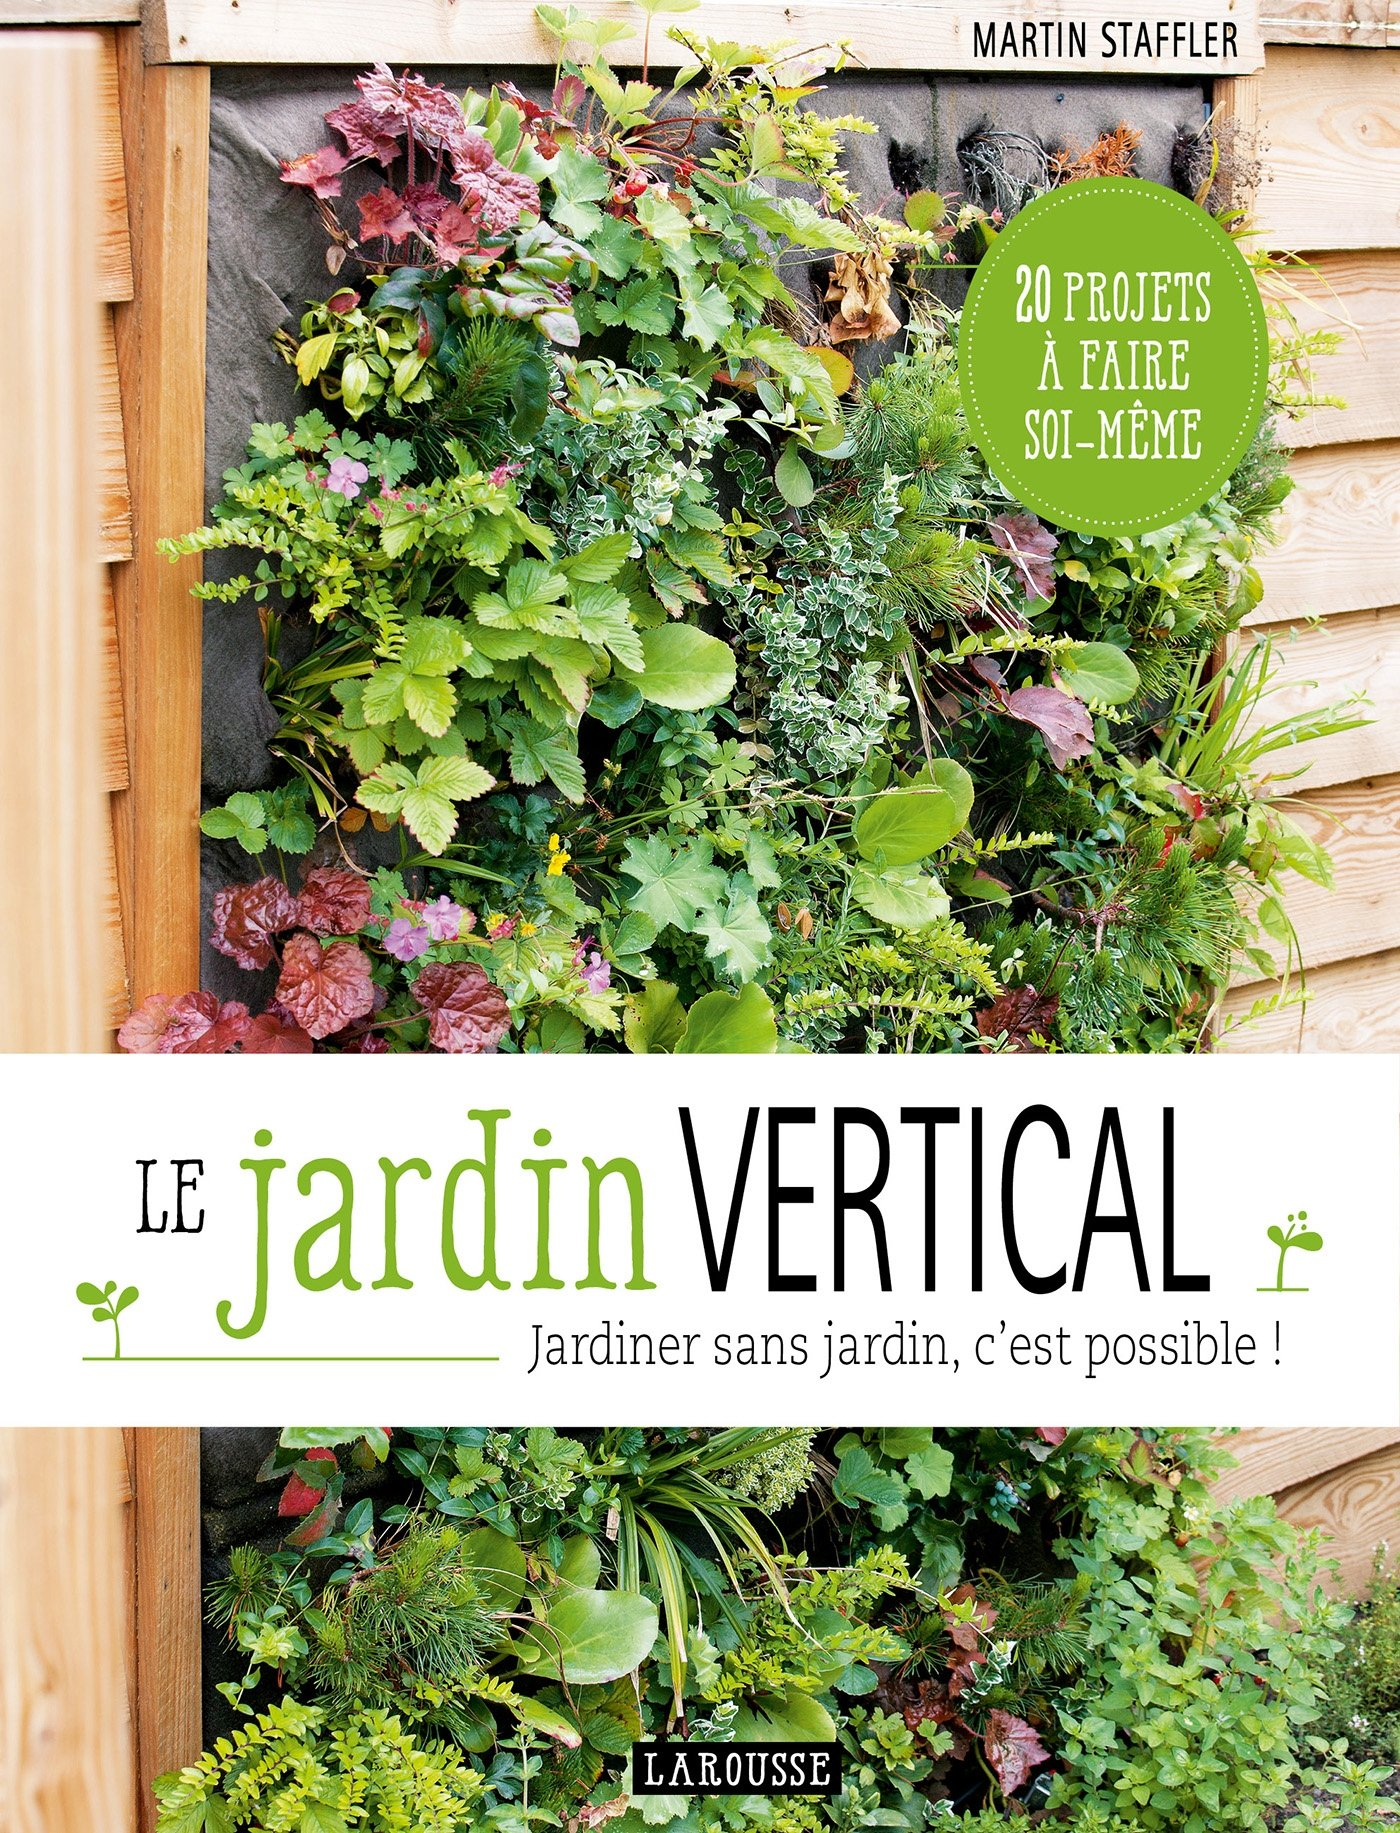 Le jardin vertical: Jardiner sans jardin, cest possible! Hors Collection - Jardin: Amazon.es: Staffler, Martin: Libros en idiomas extranjeros